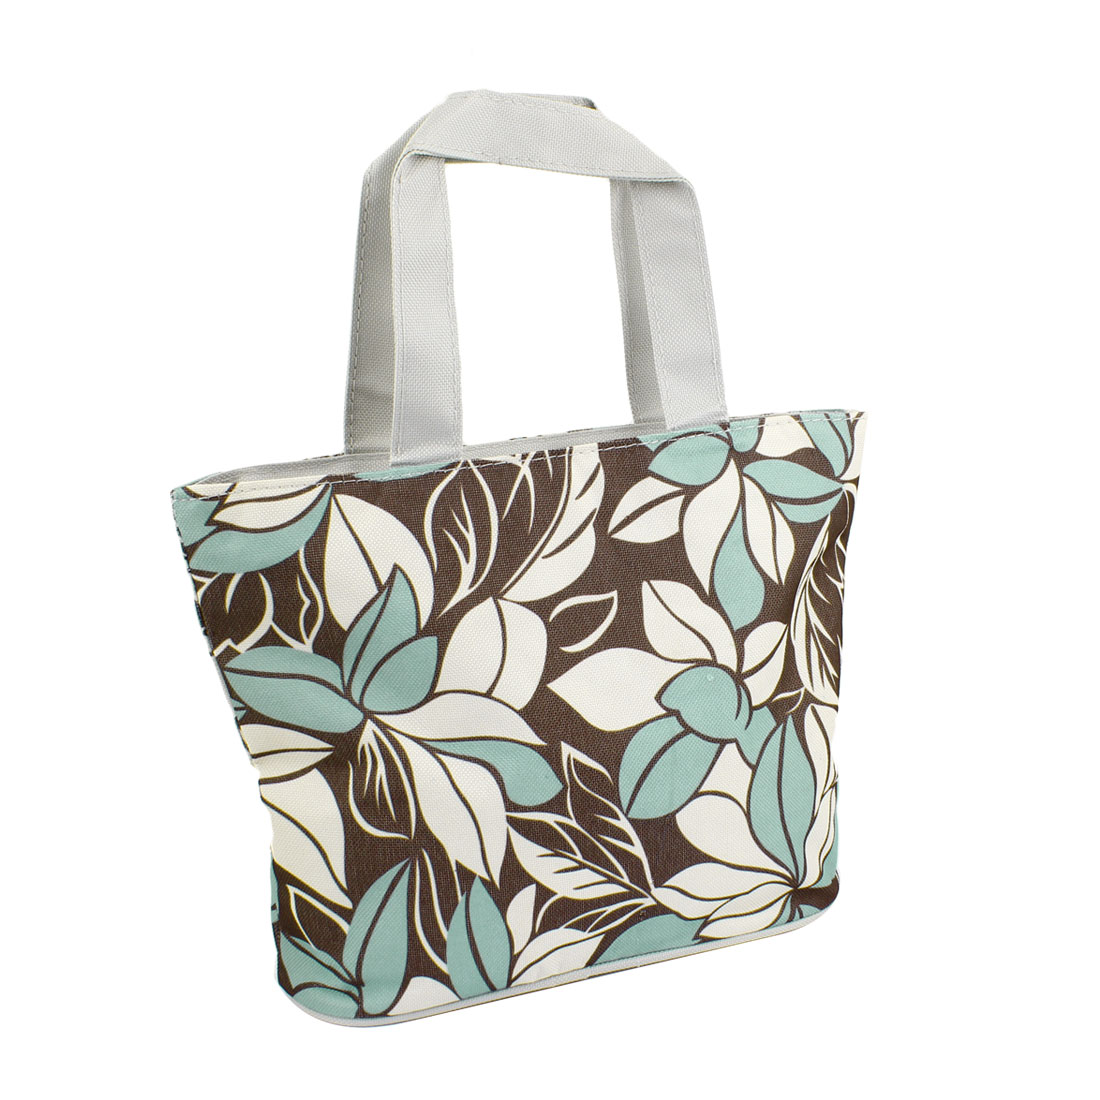 Light Blue Flower Pattern Zip Up Foldable Recycle Shopping Handbag Tote Khaki